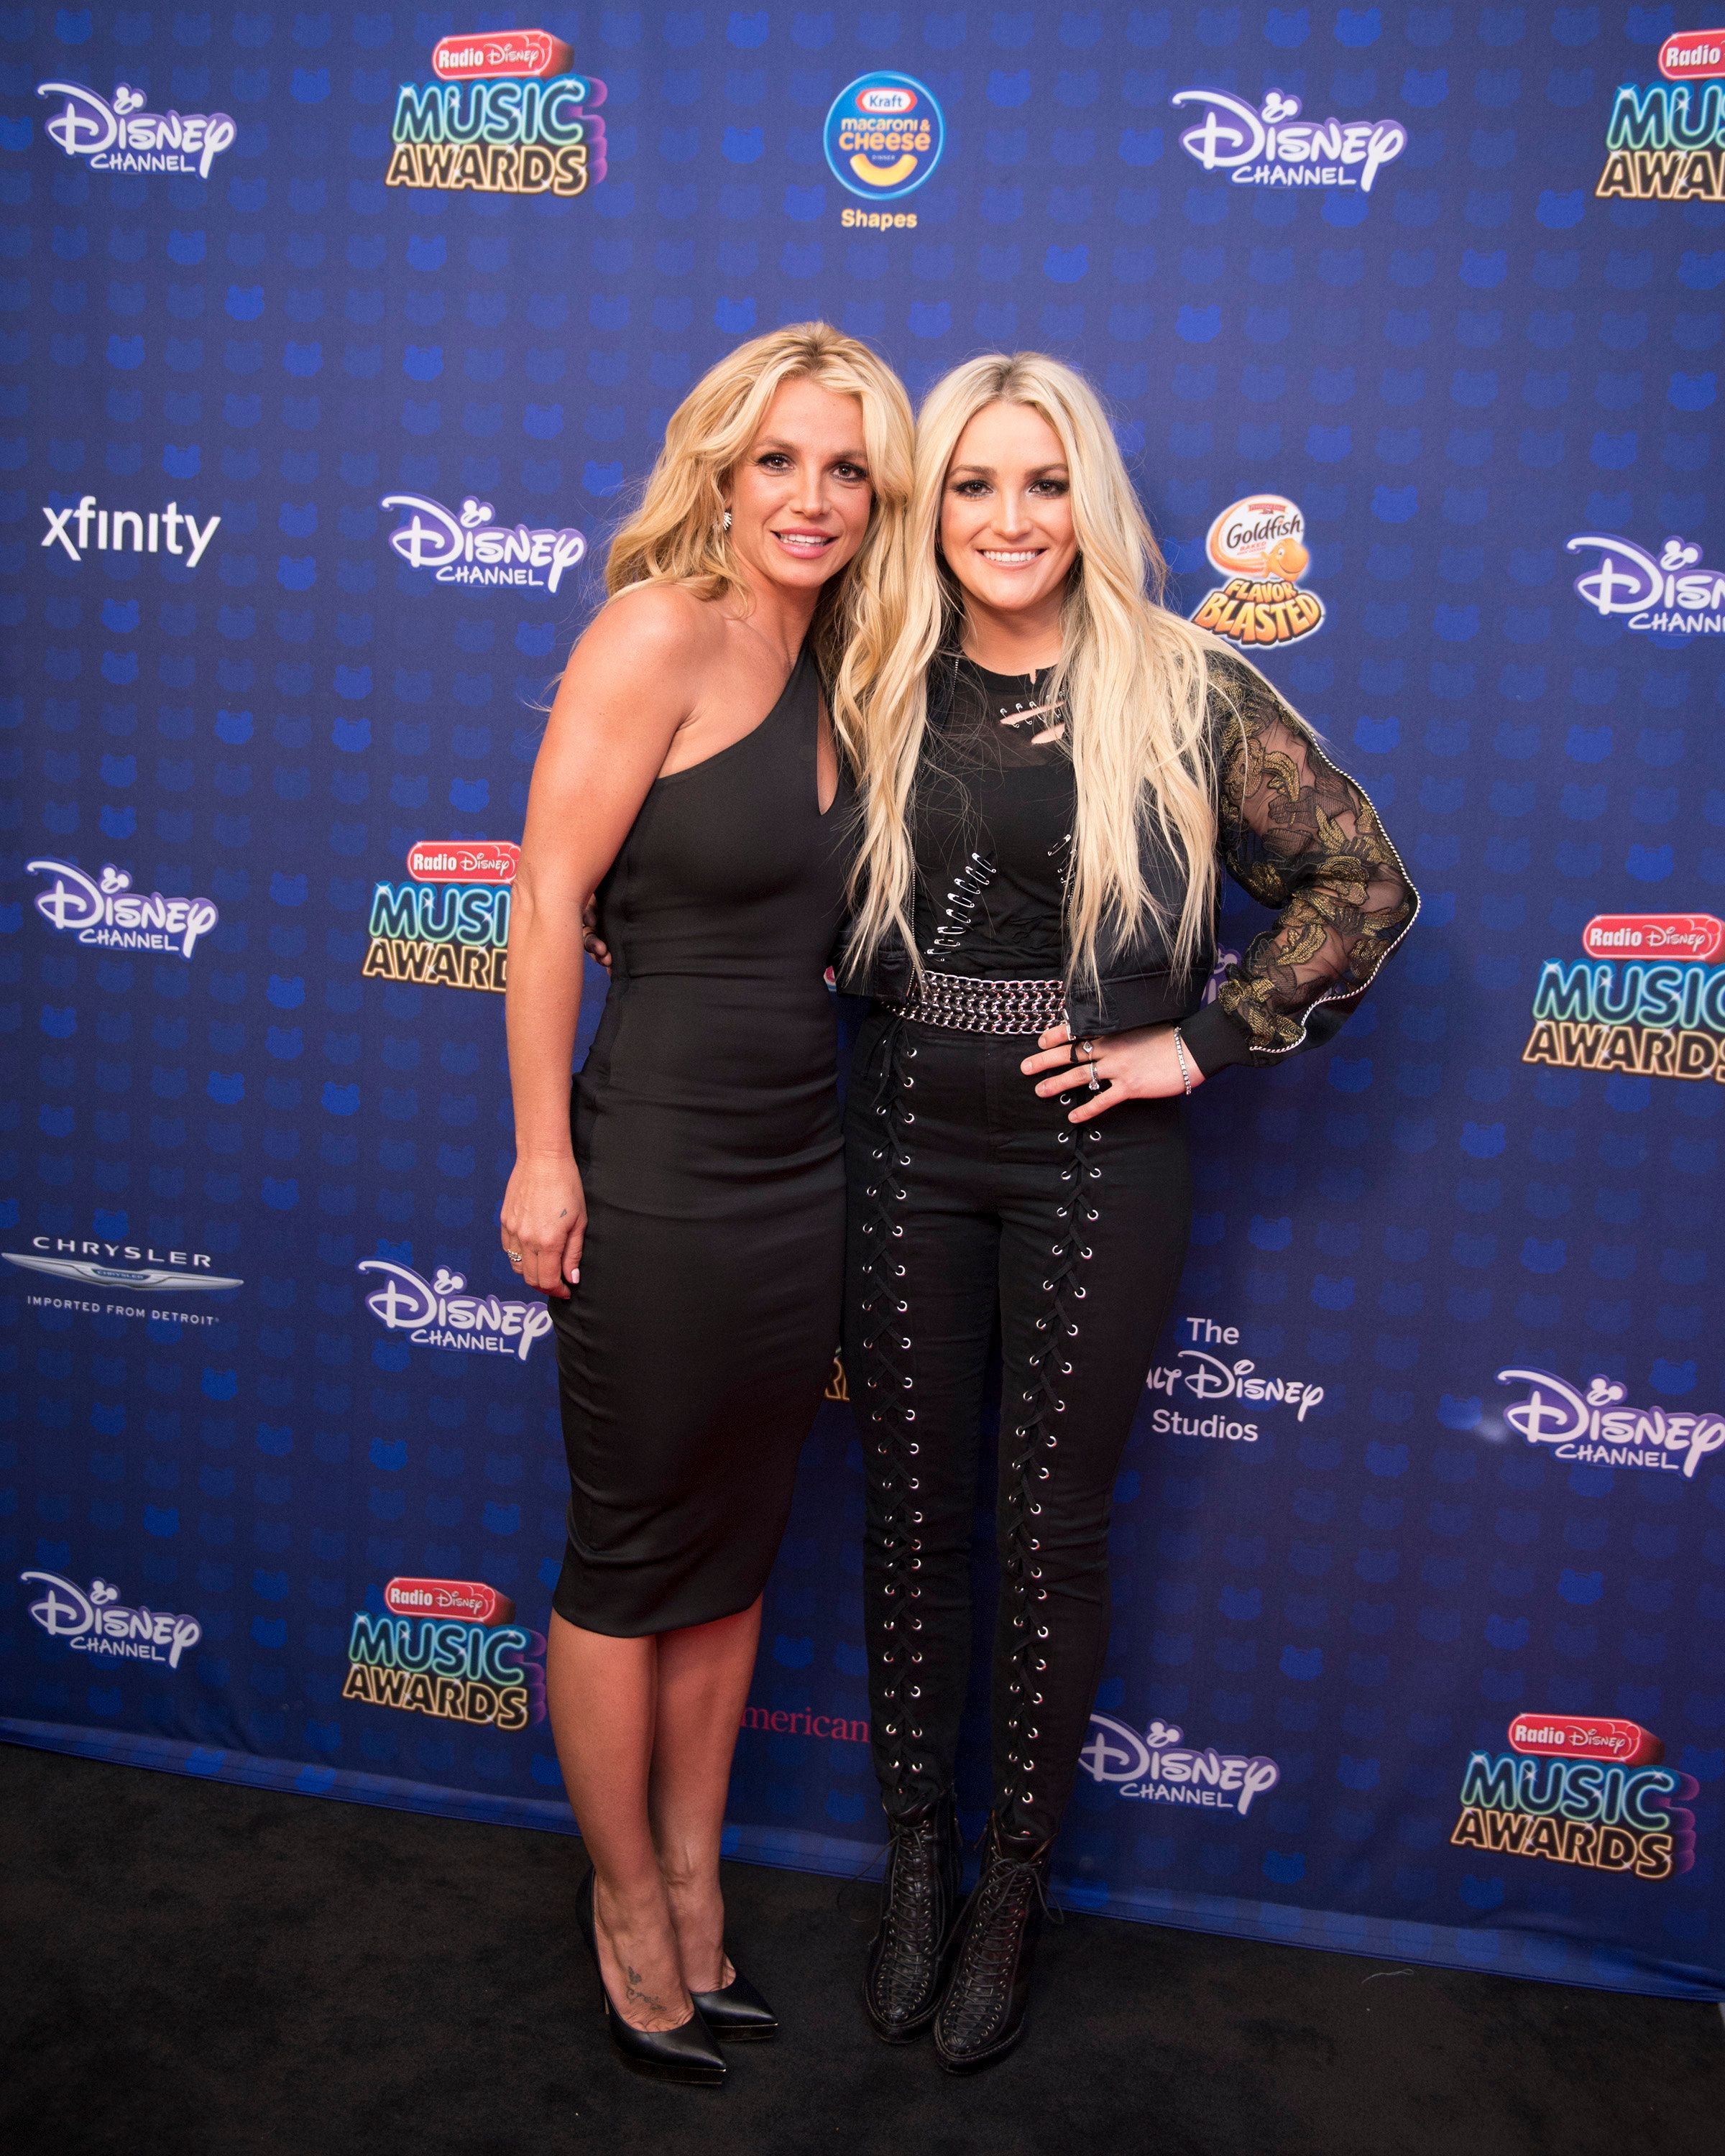 Britney and Jamie Lynn Spears at the2017 Radio Disney Music Awards in April 2017.